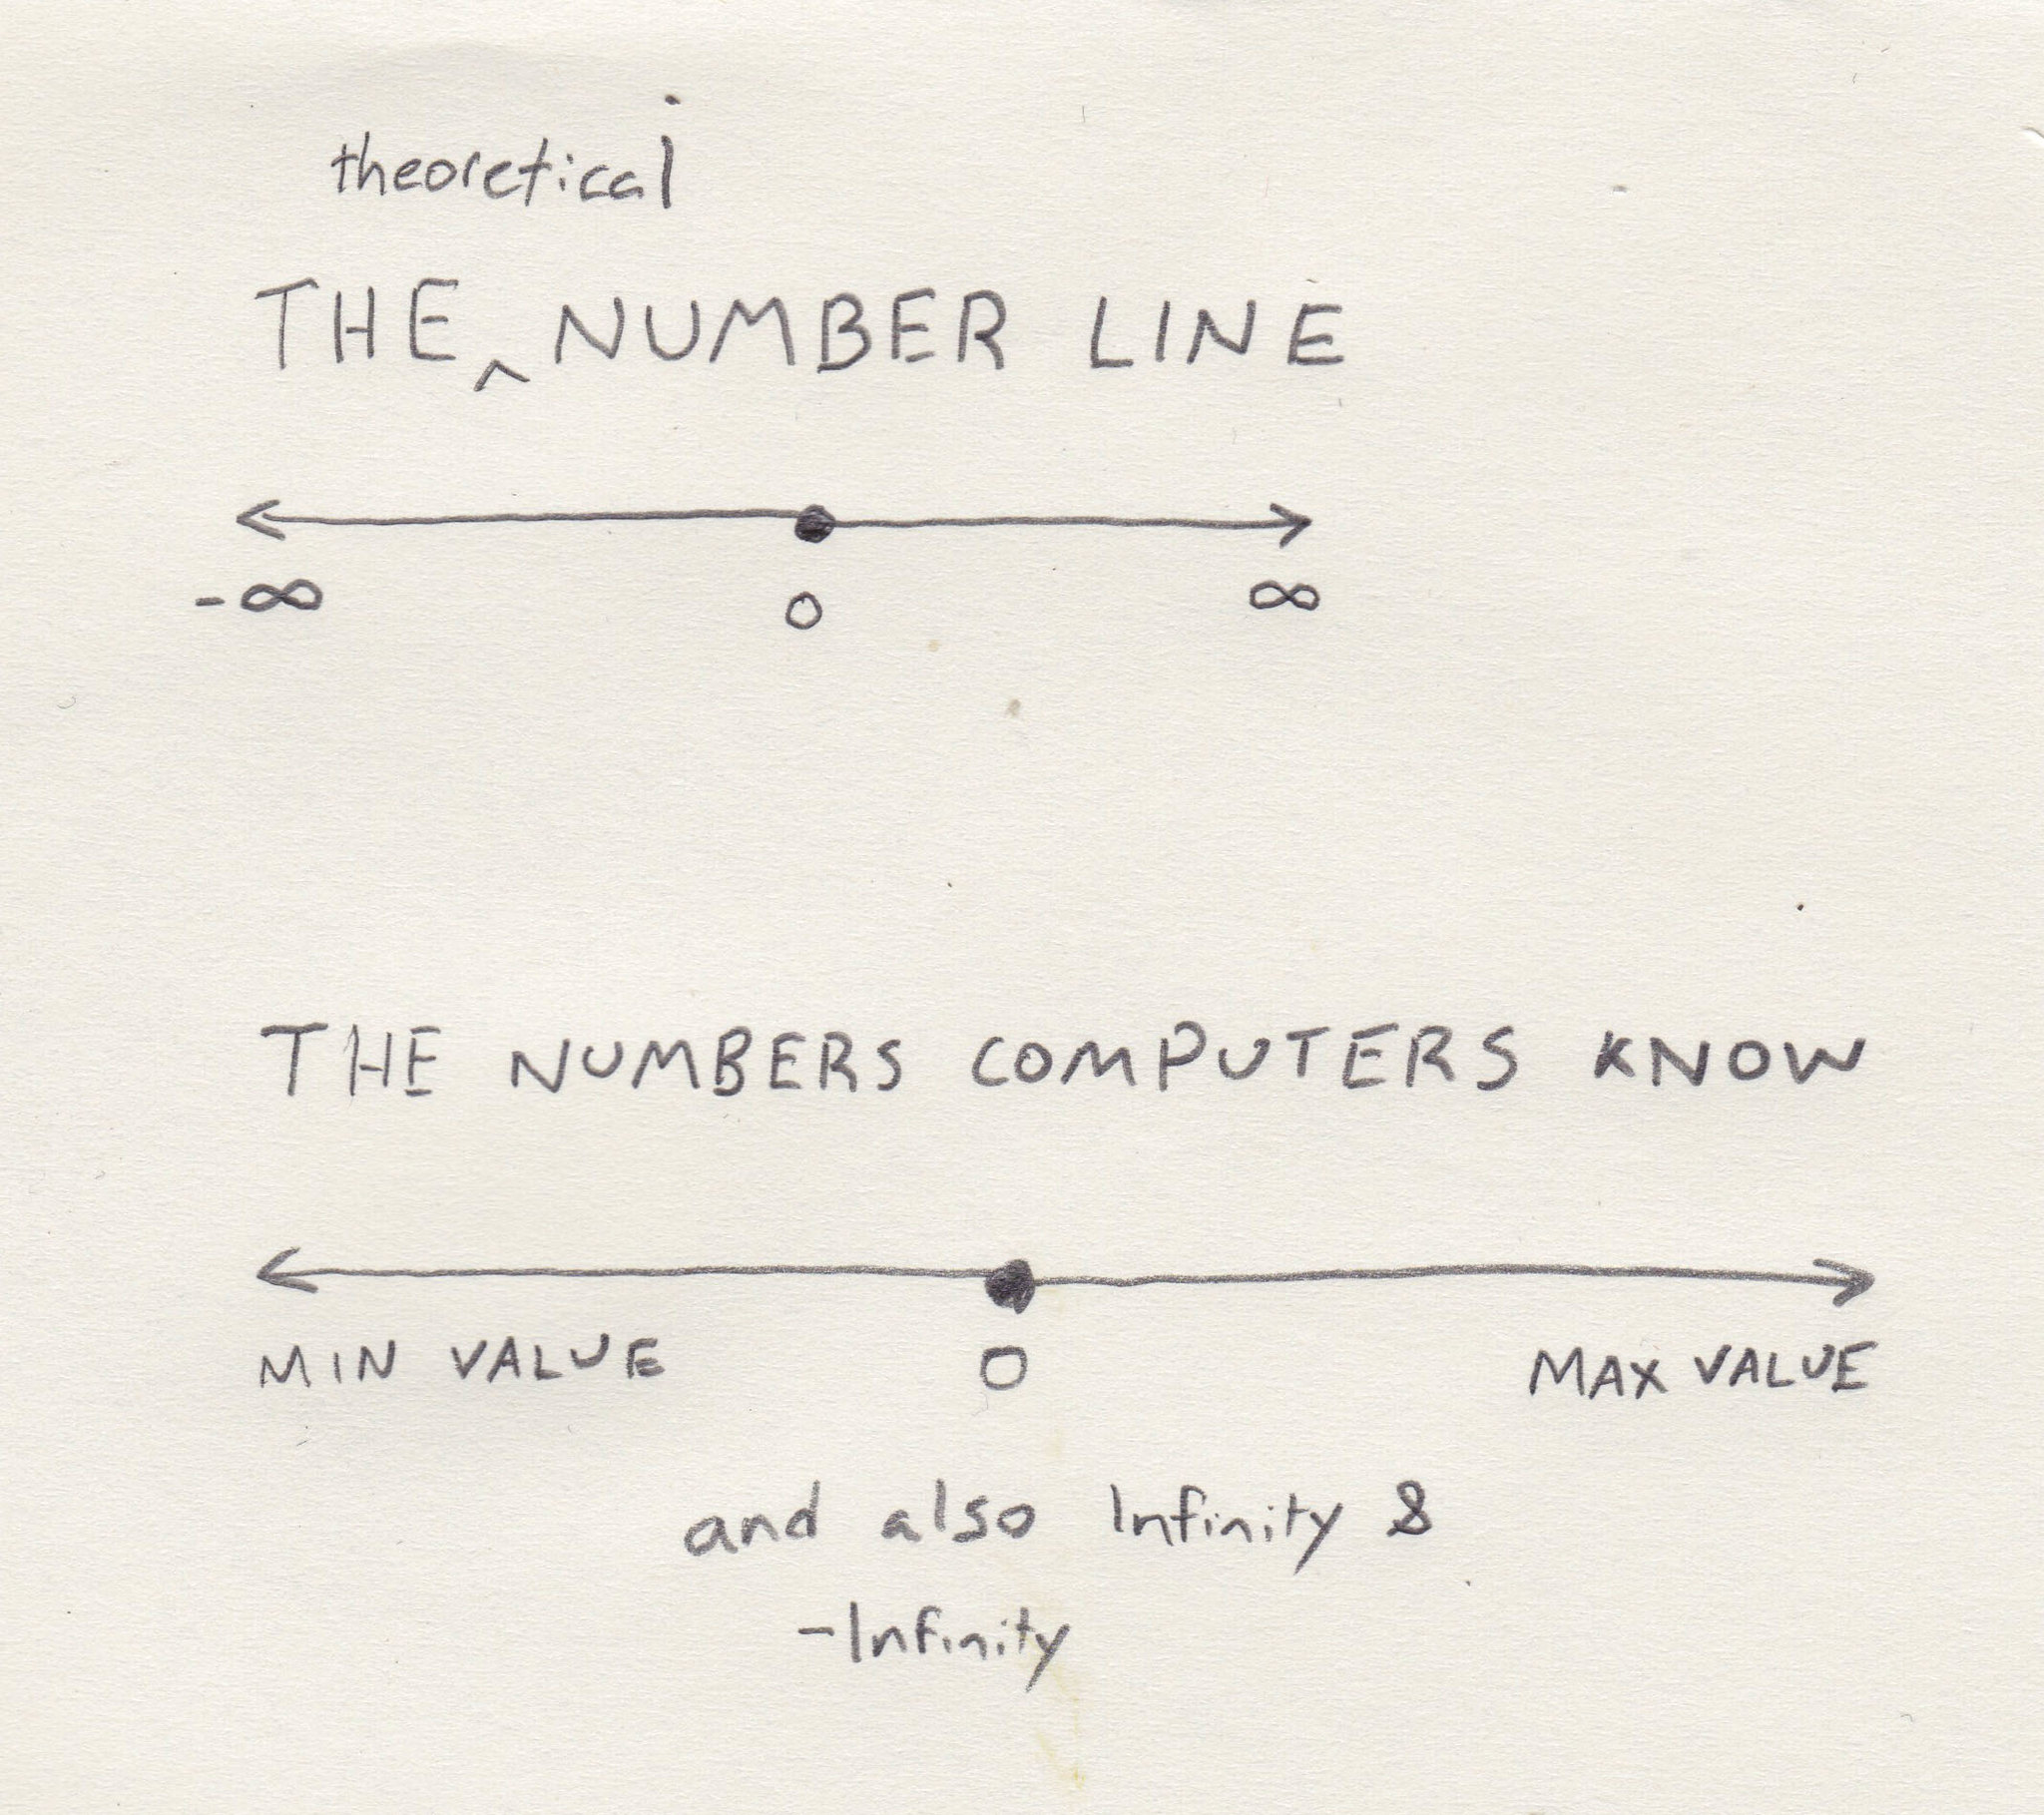 the theoretical number line of math and the number line of computers